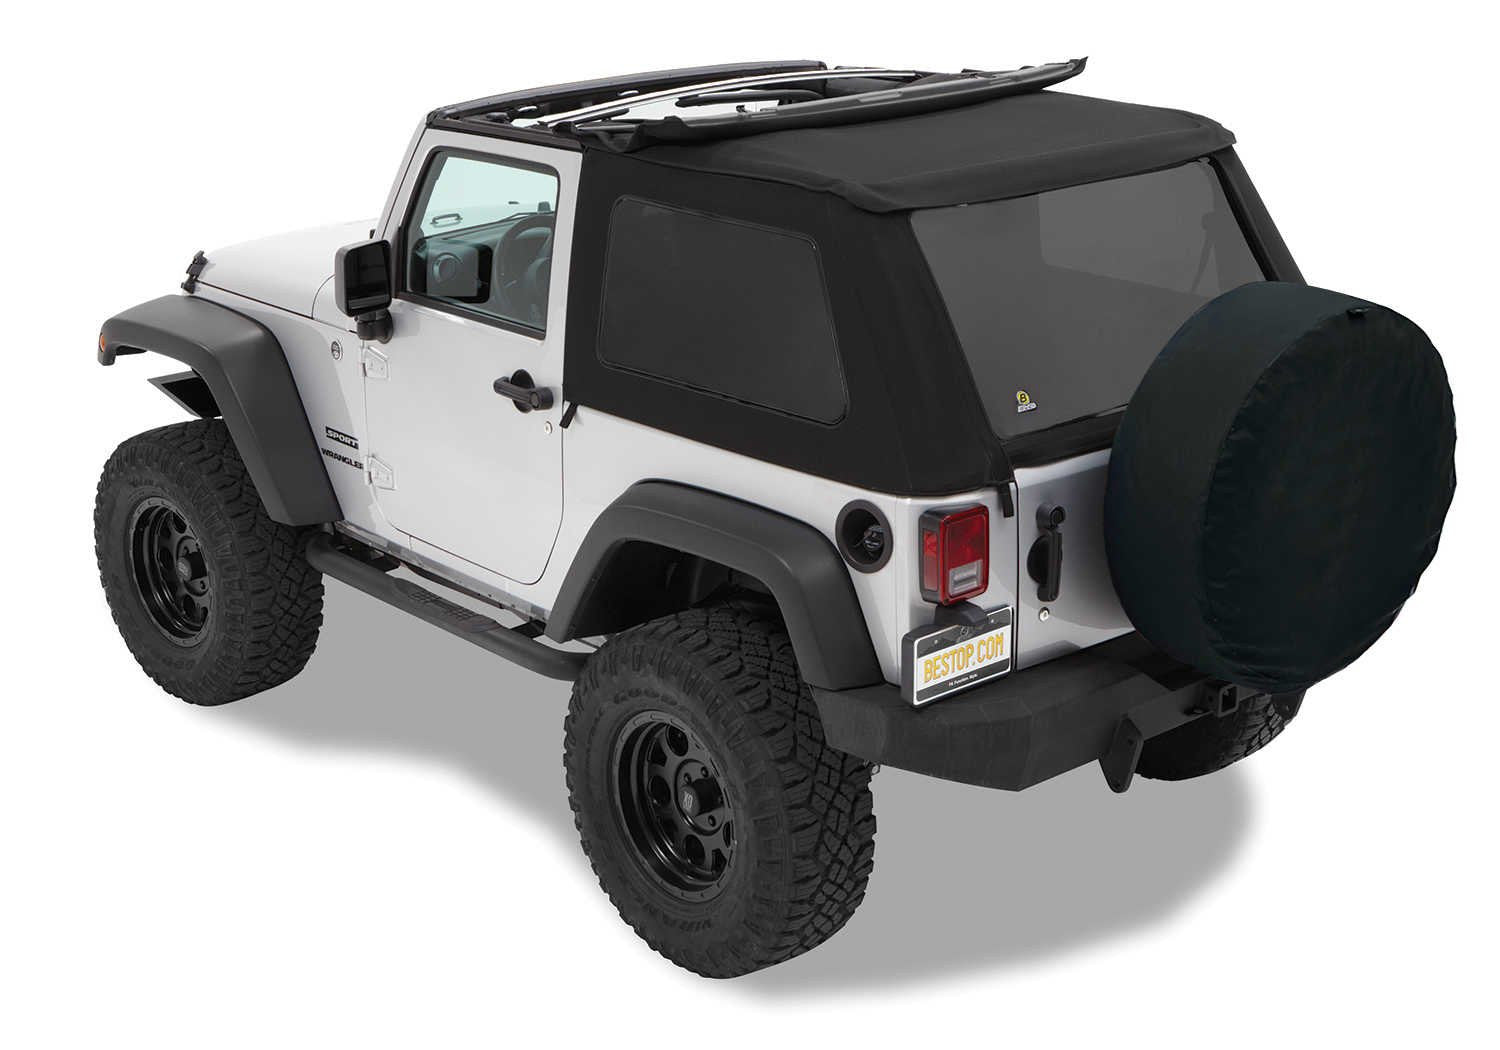 Captivating Bestop Trektop NX Twill Soft Top For 07 17 Jeep Wrangler JK 2 Door   Black  Dog Offroad